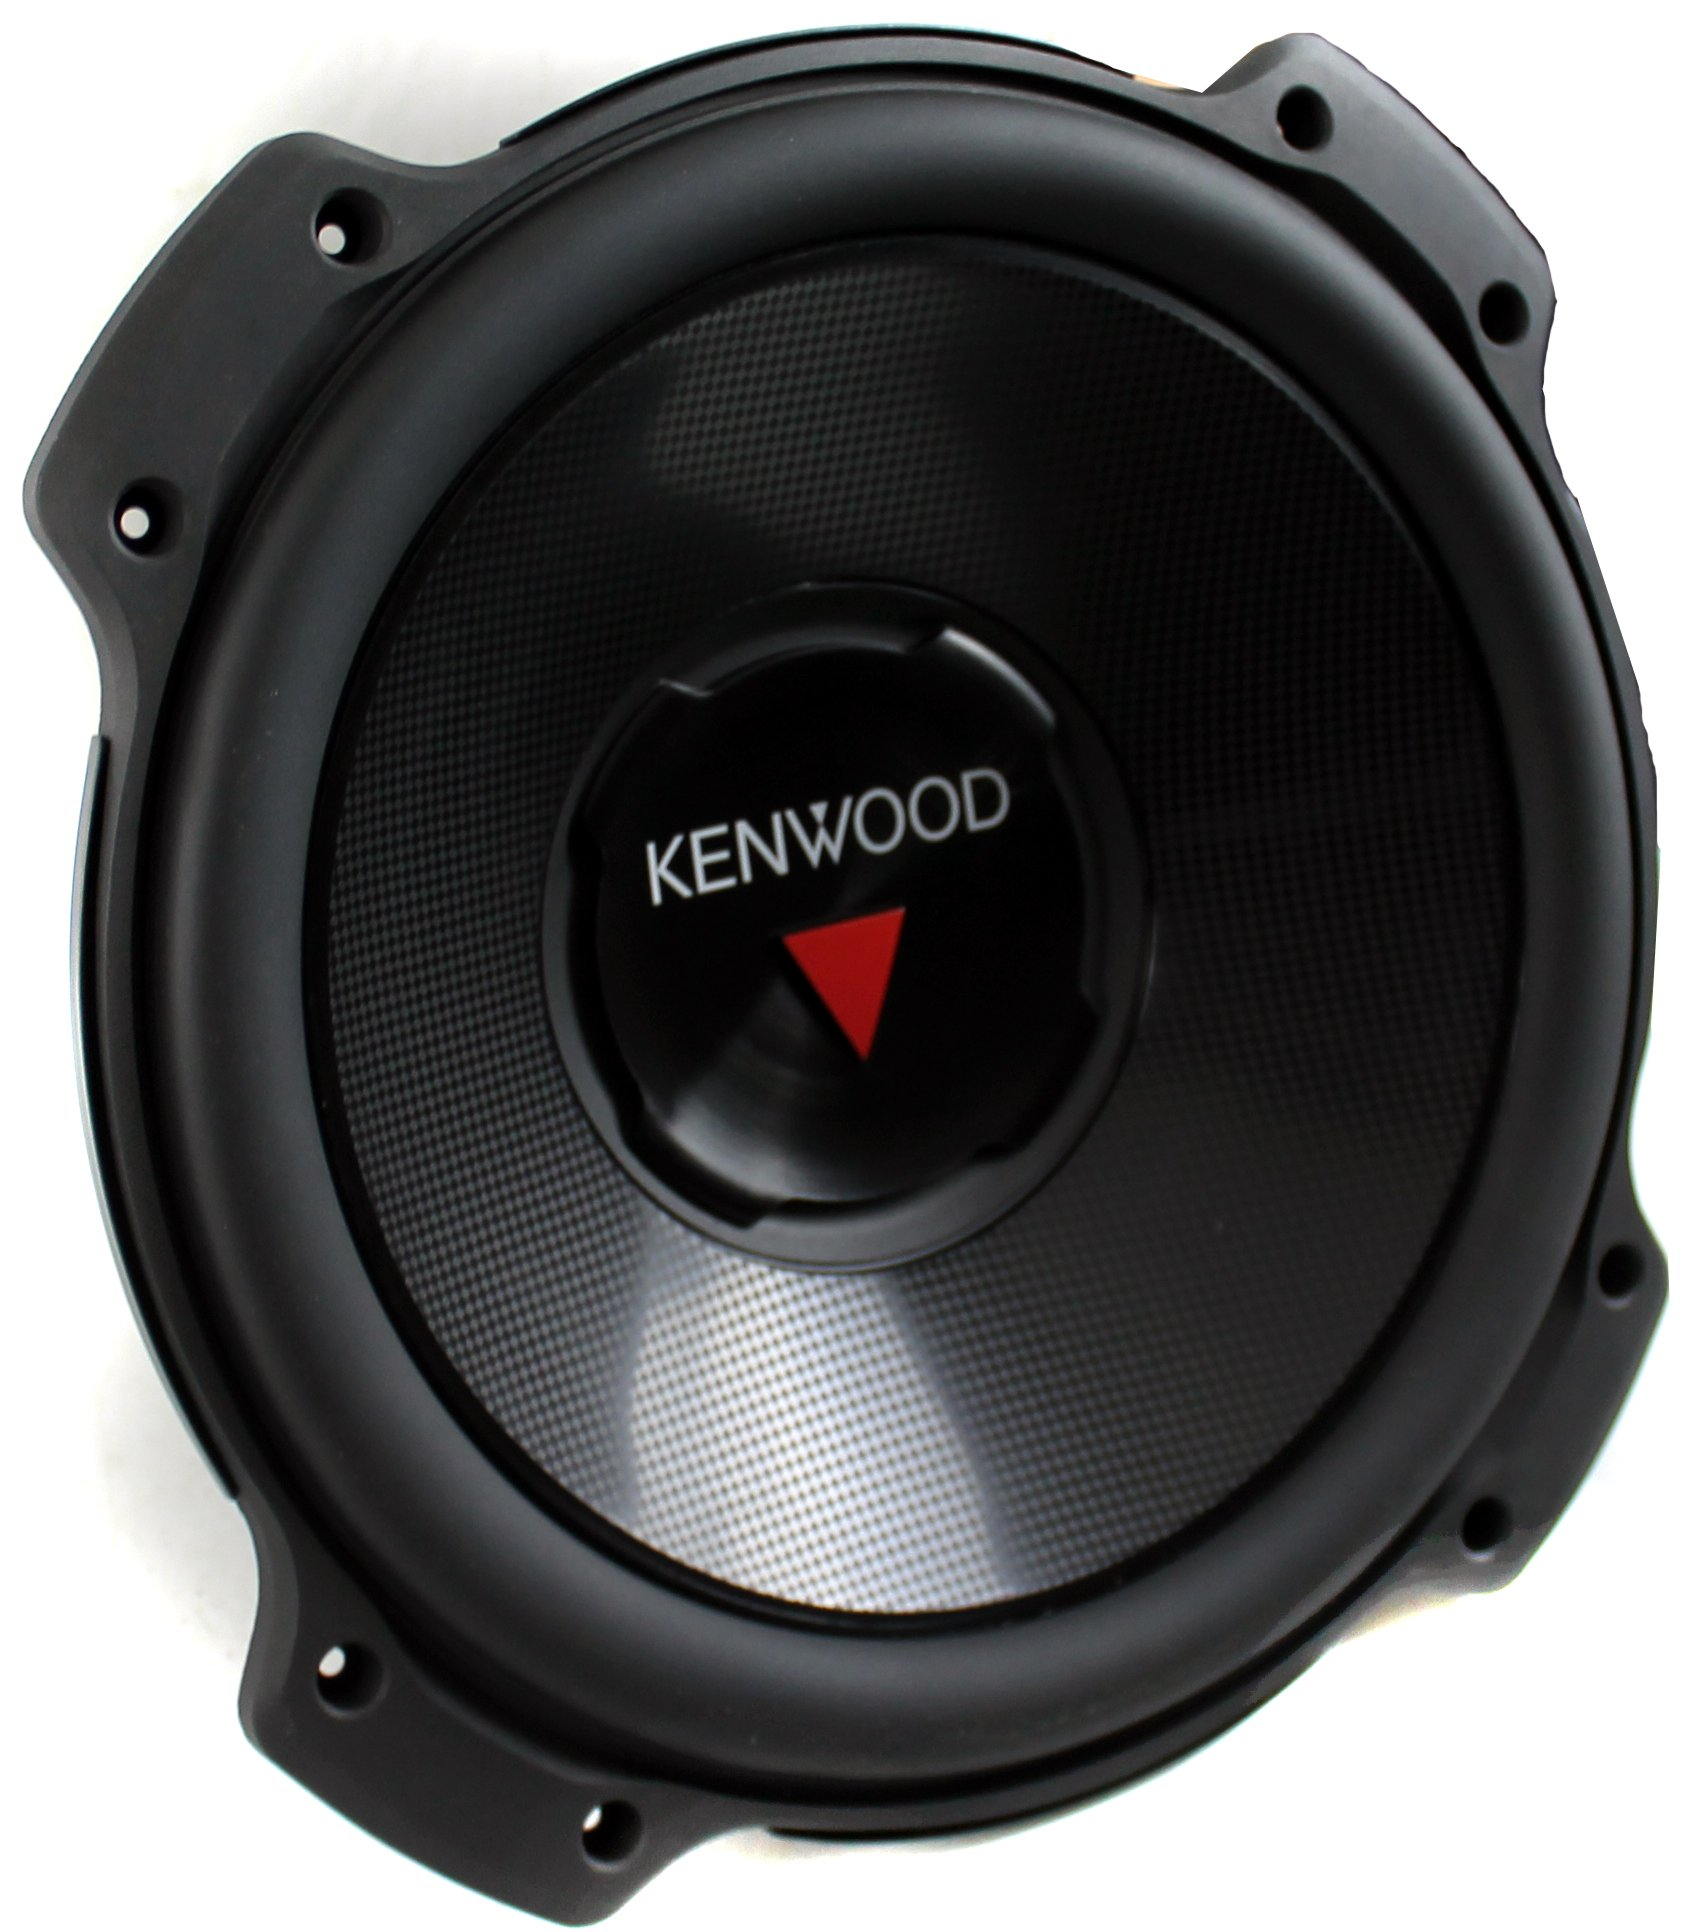 Kenwood 12 Inch 2000w 4 Ohm Subwoofer Sealed Sub Box Amplifier Wiring Kit For Subs Wire